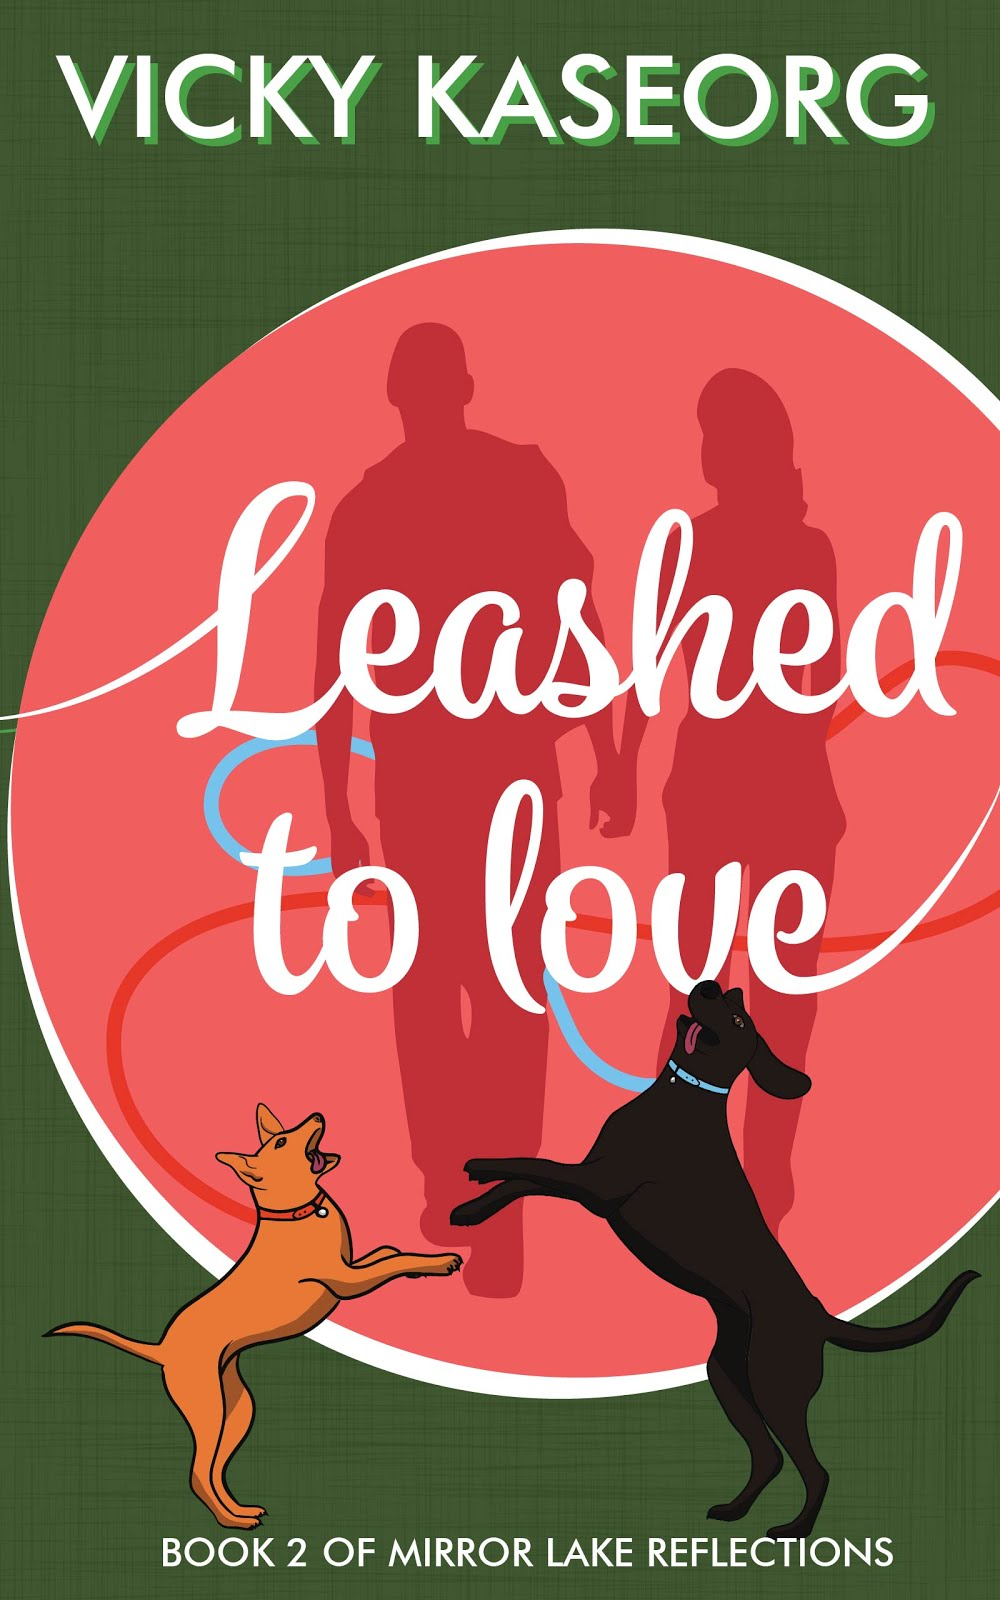 Leashed to Love